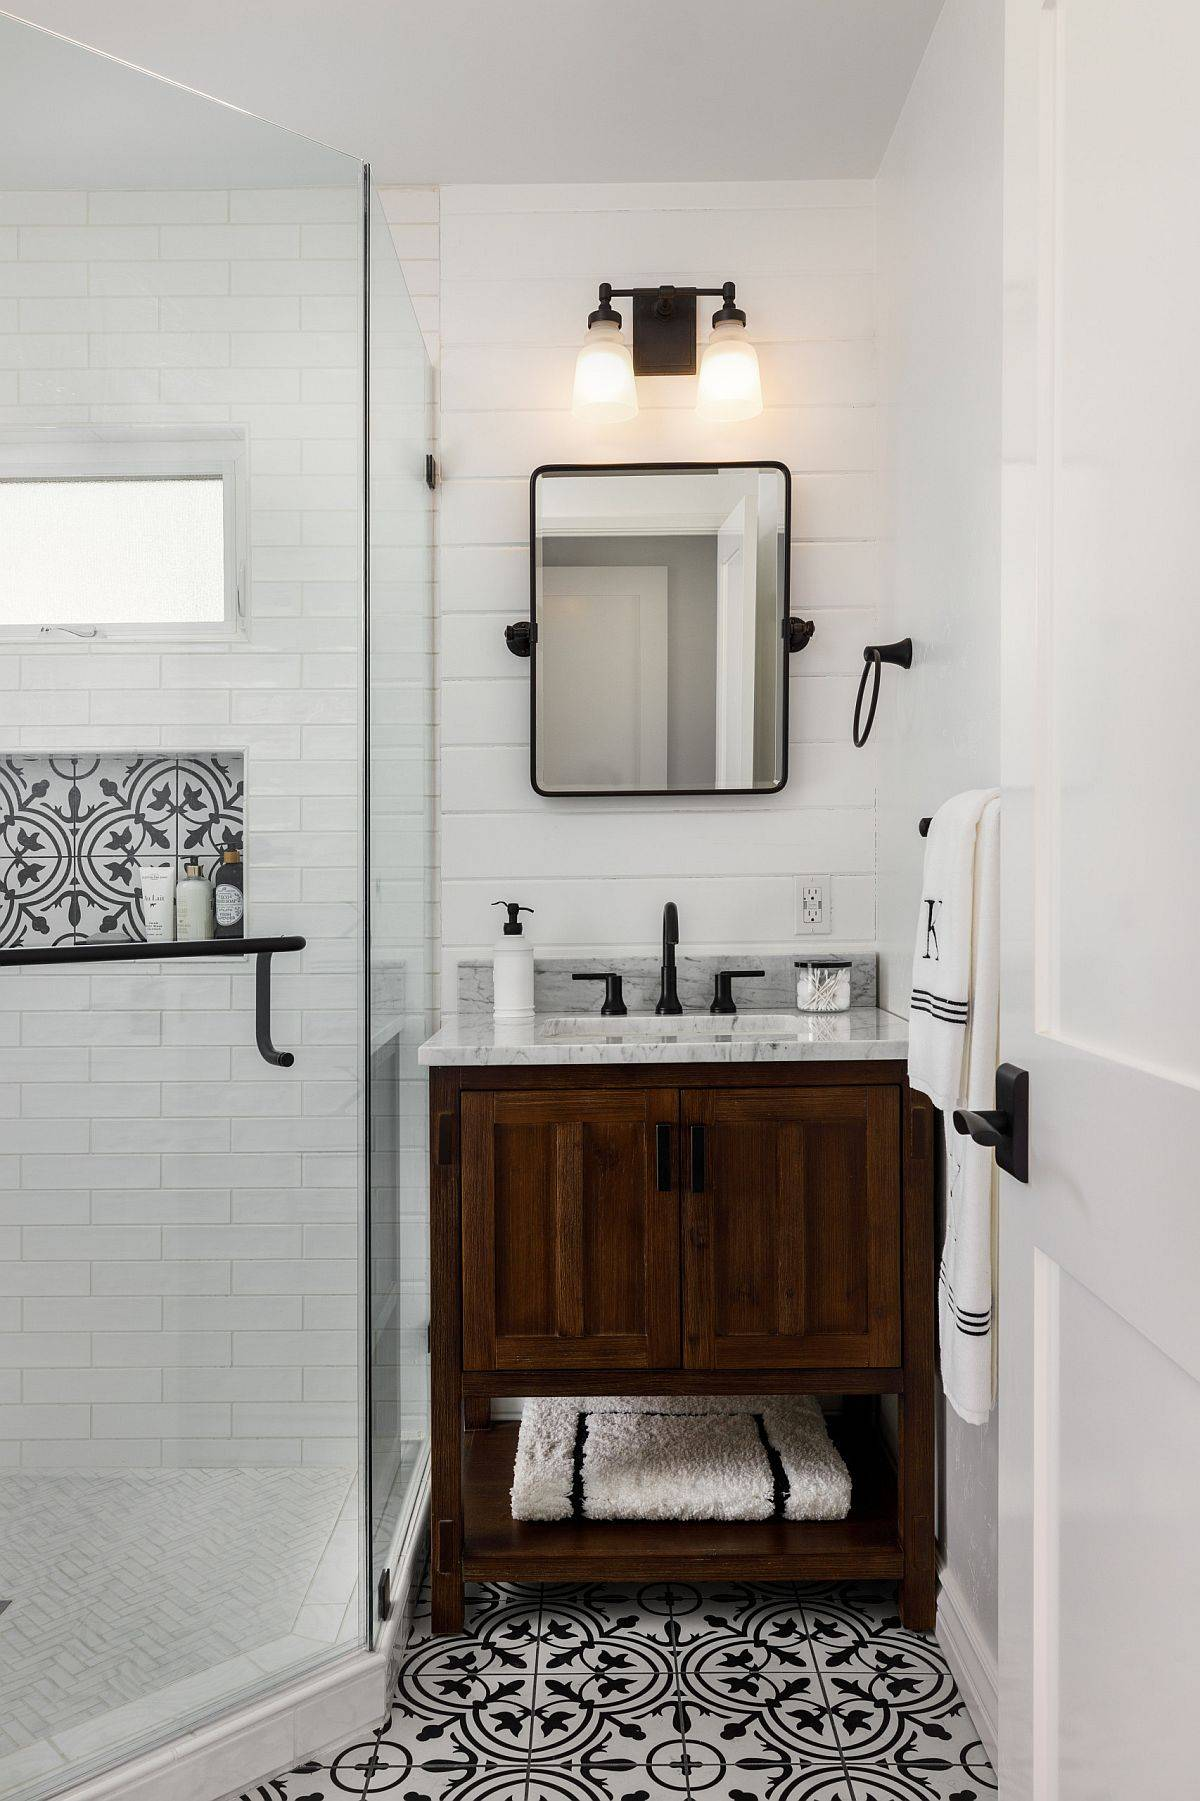 Beach-and-farmhouse-styles-rolled-into-one-in-the-small-bathroom-with-vanity-in-the-corner-31648